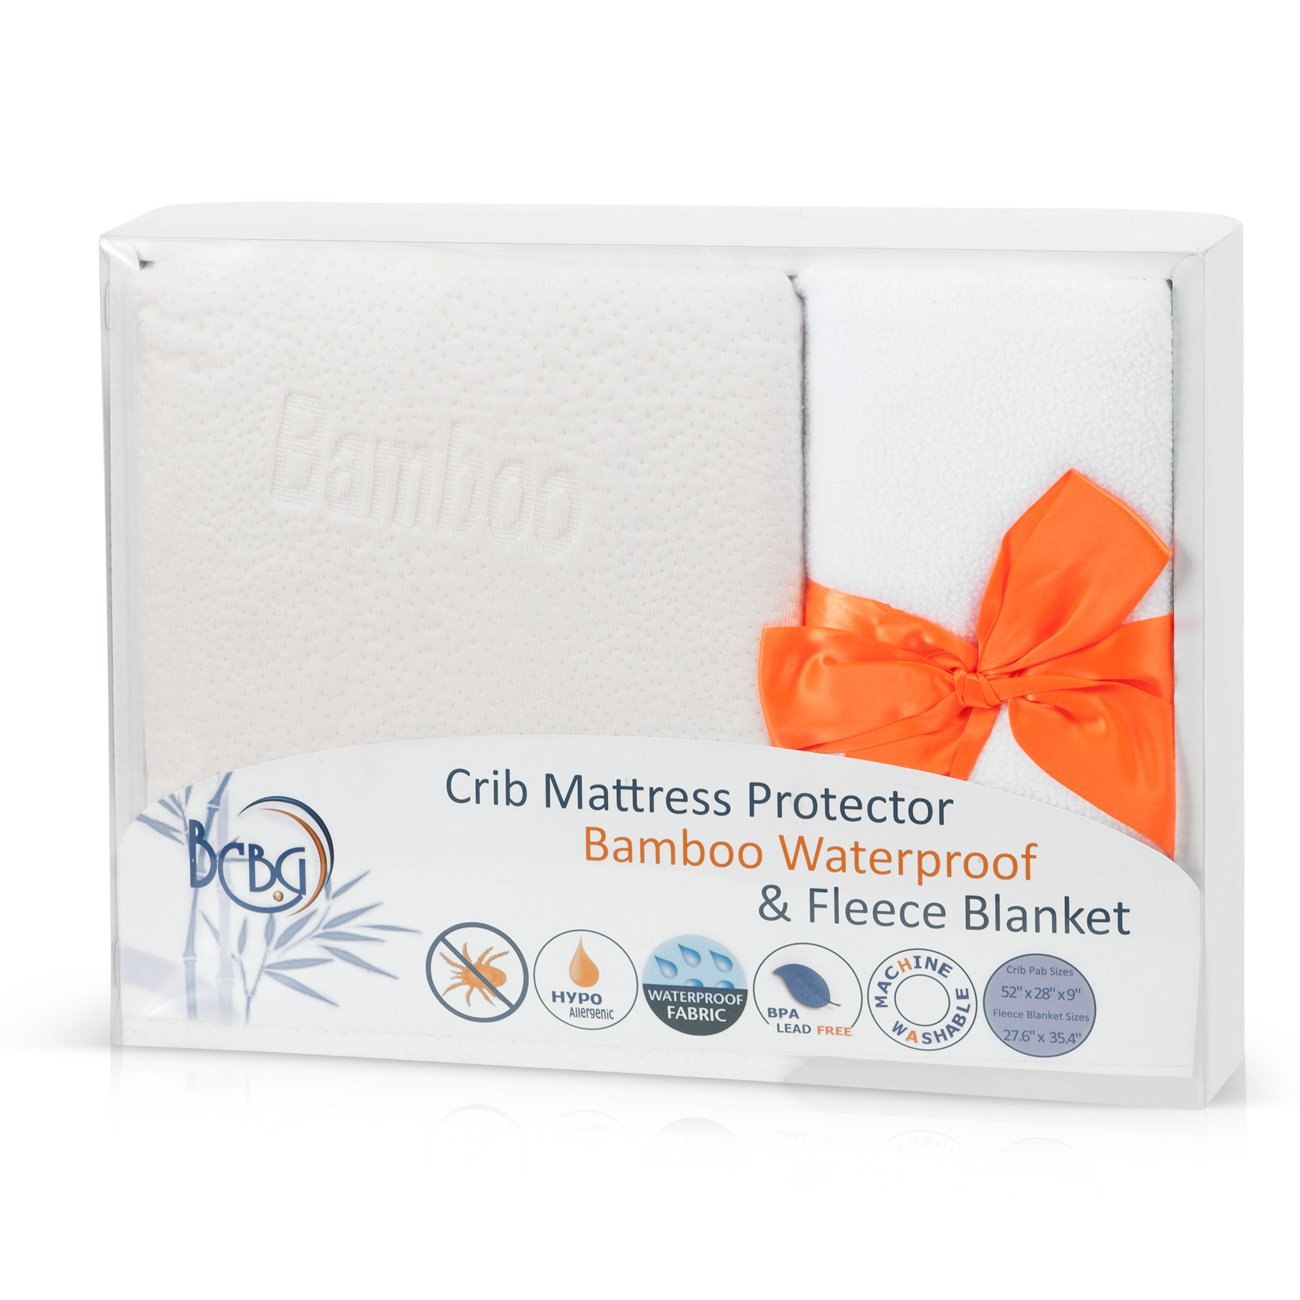 Baby Crib Mattress Set by BCBG-Online: Fitted Waterproof Bamboo Protector Cover Pad and Fleece Polyester Blanket for Infant's Crib in a Gift Box